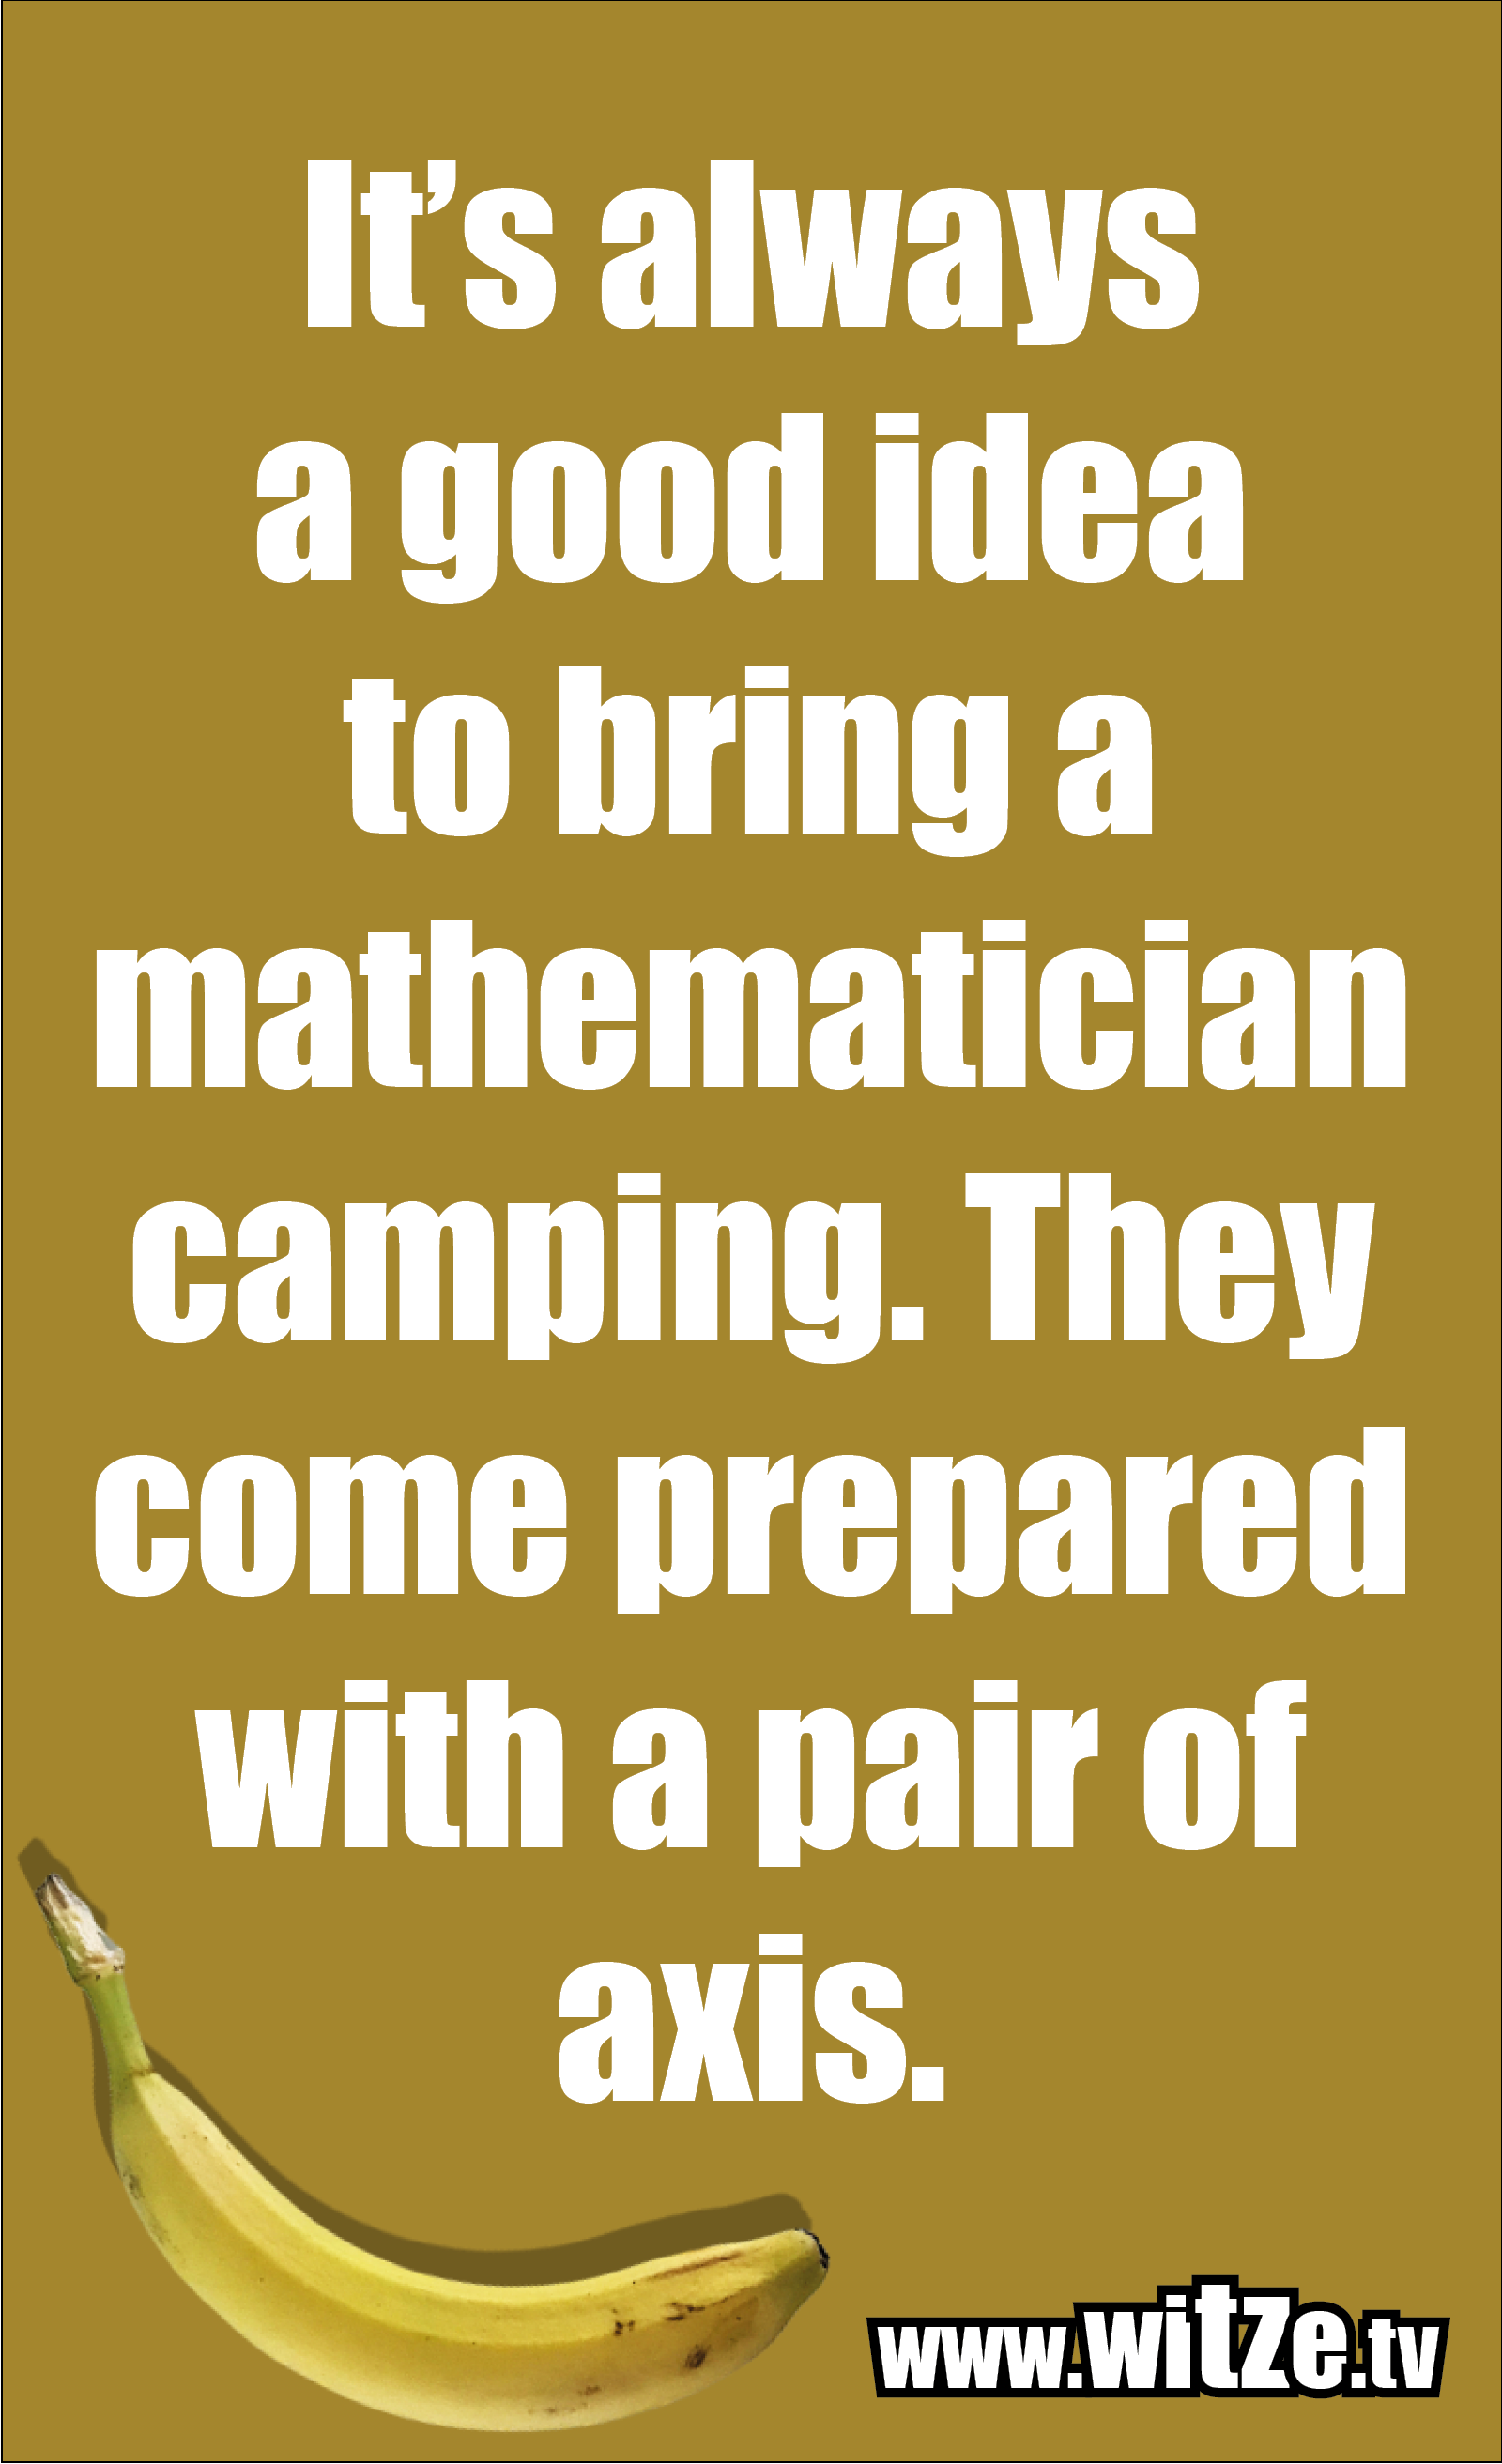 Math joke… It's always a good idea to bring a mathematician camping. They come prepared with a pair of axis.